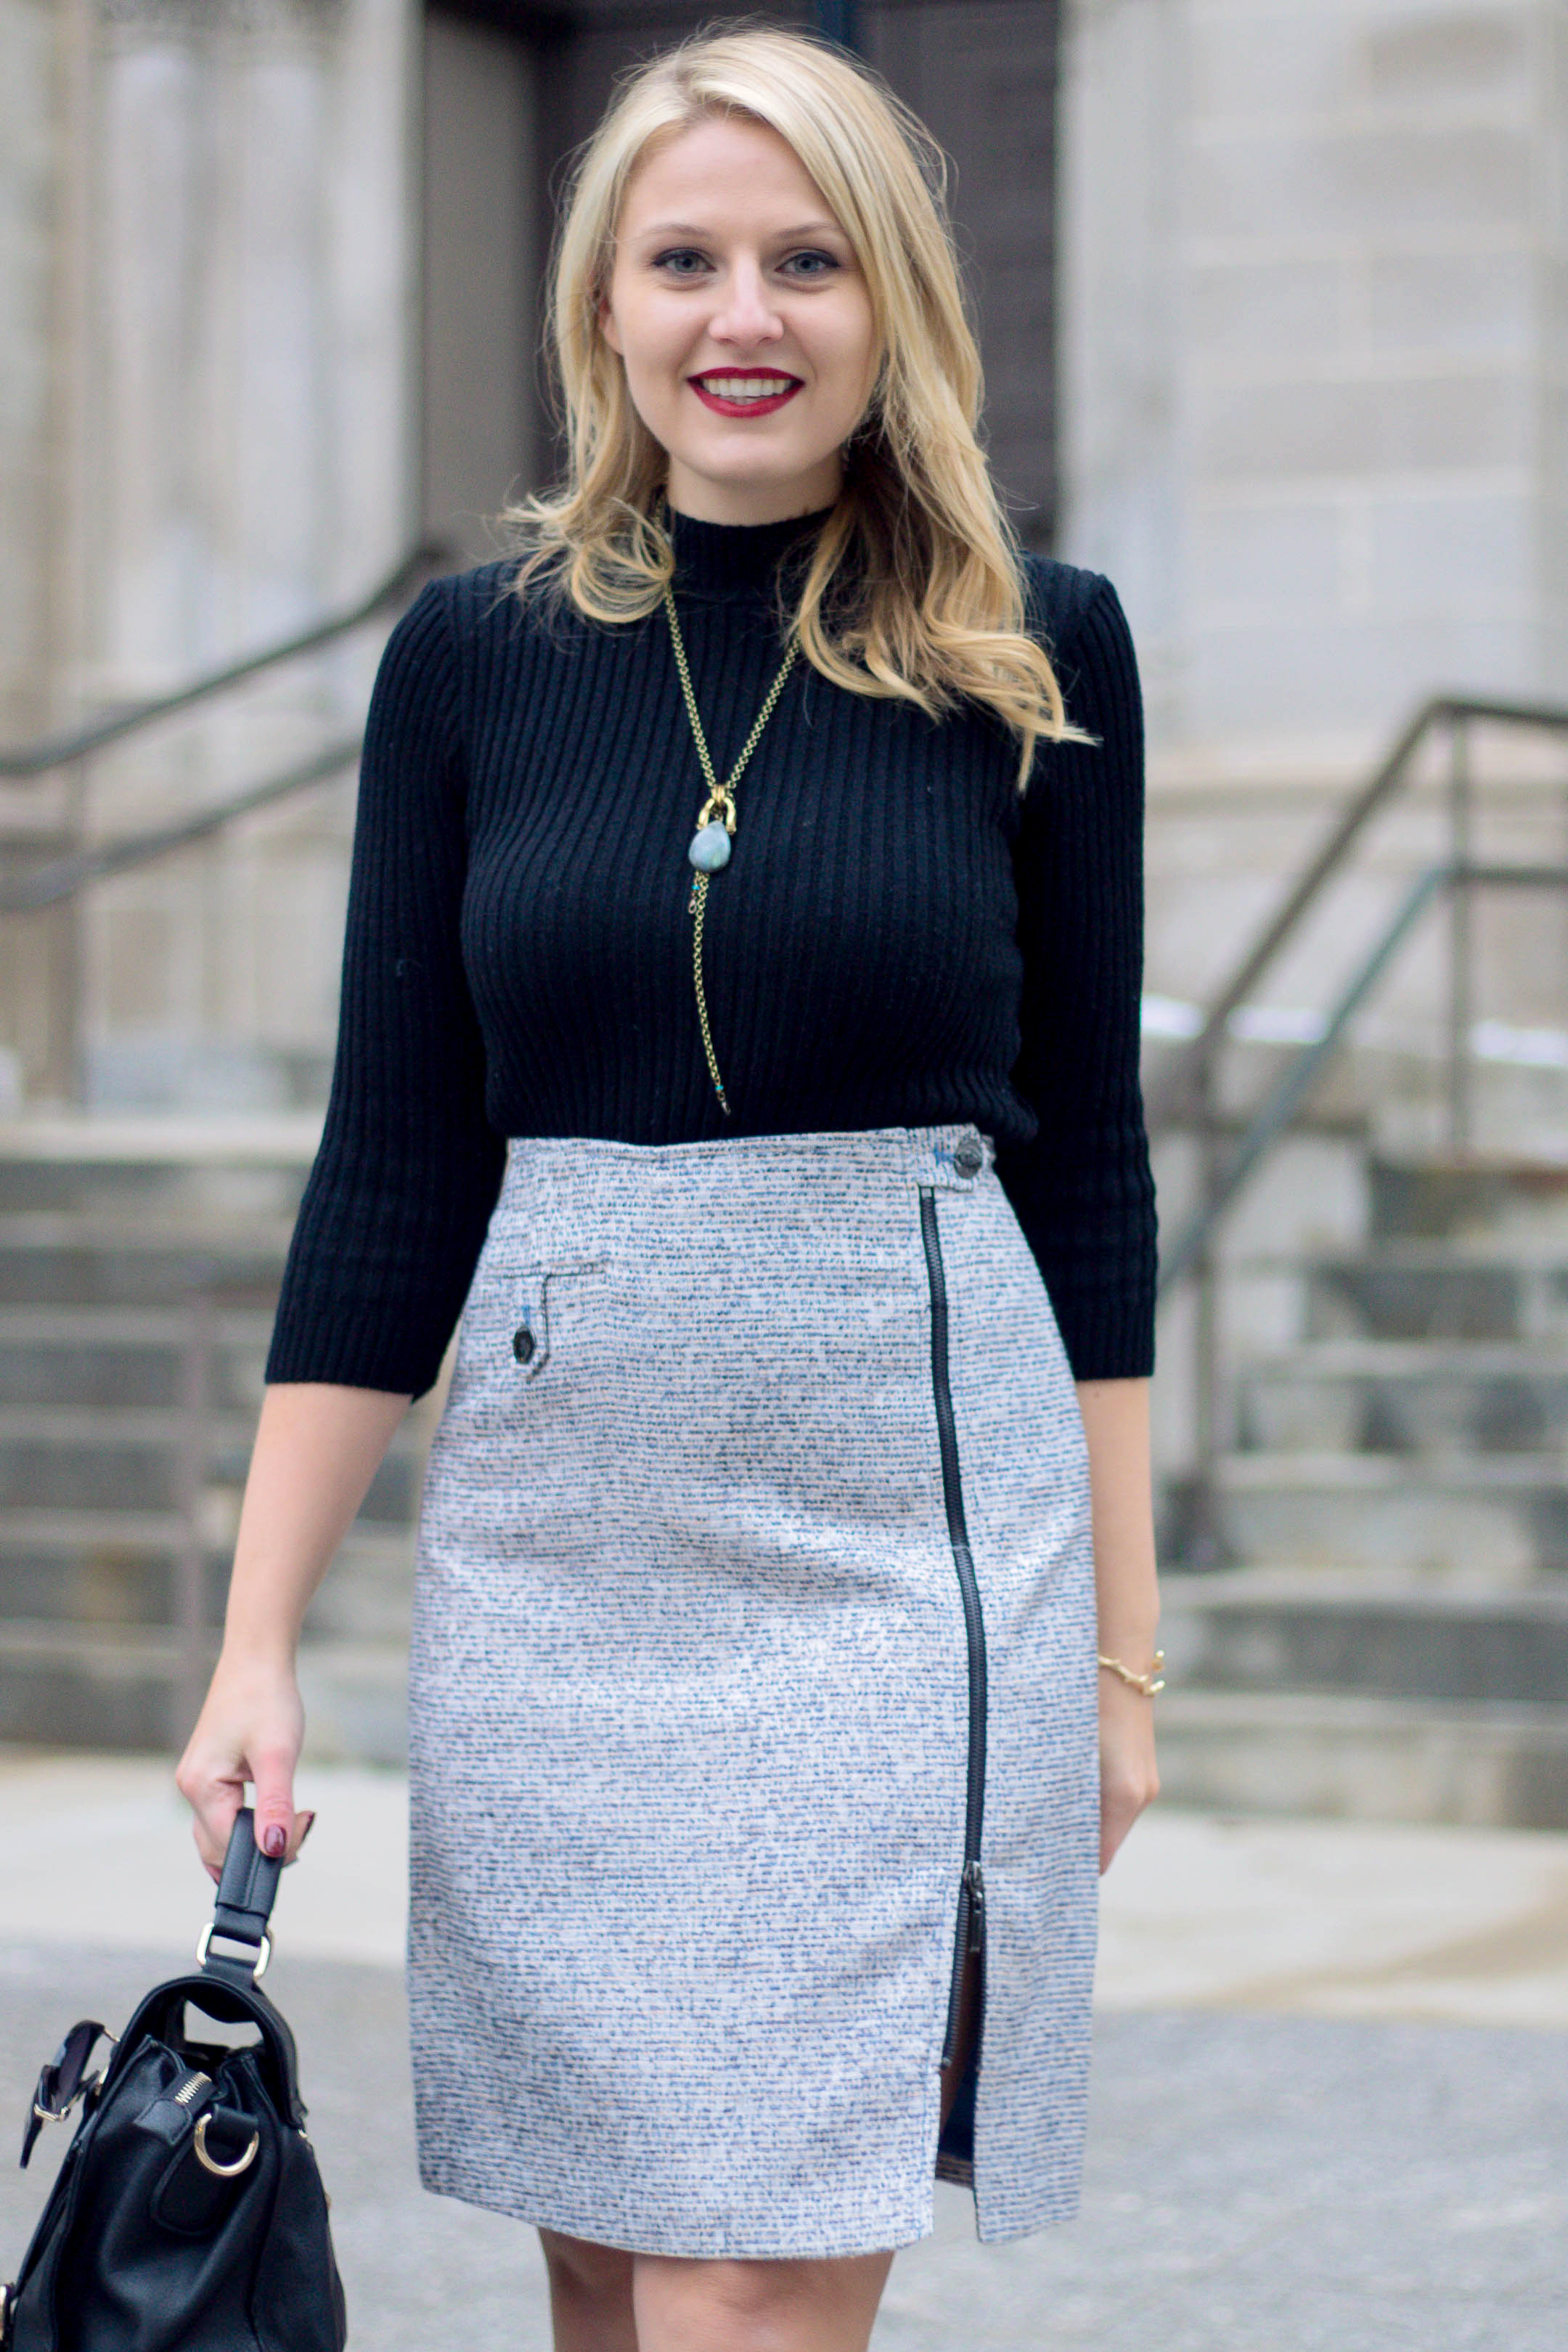 A simple tweed skirt with mock neck sweater outfit